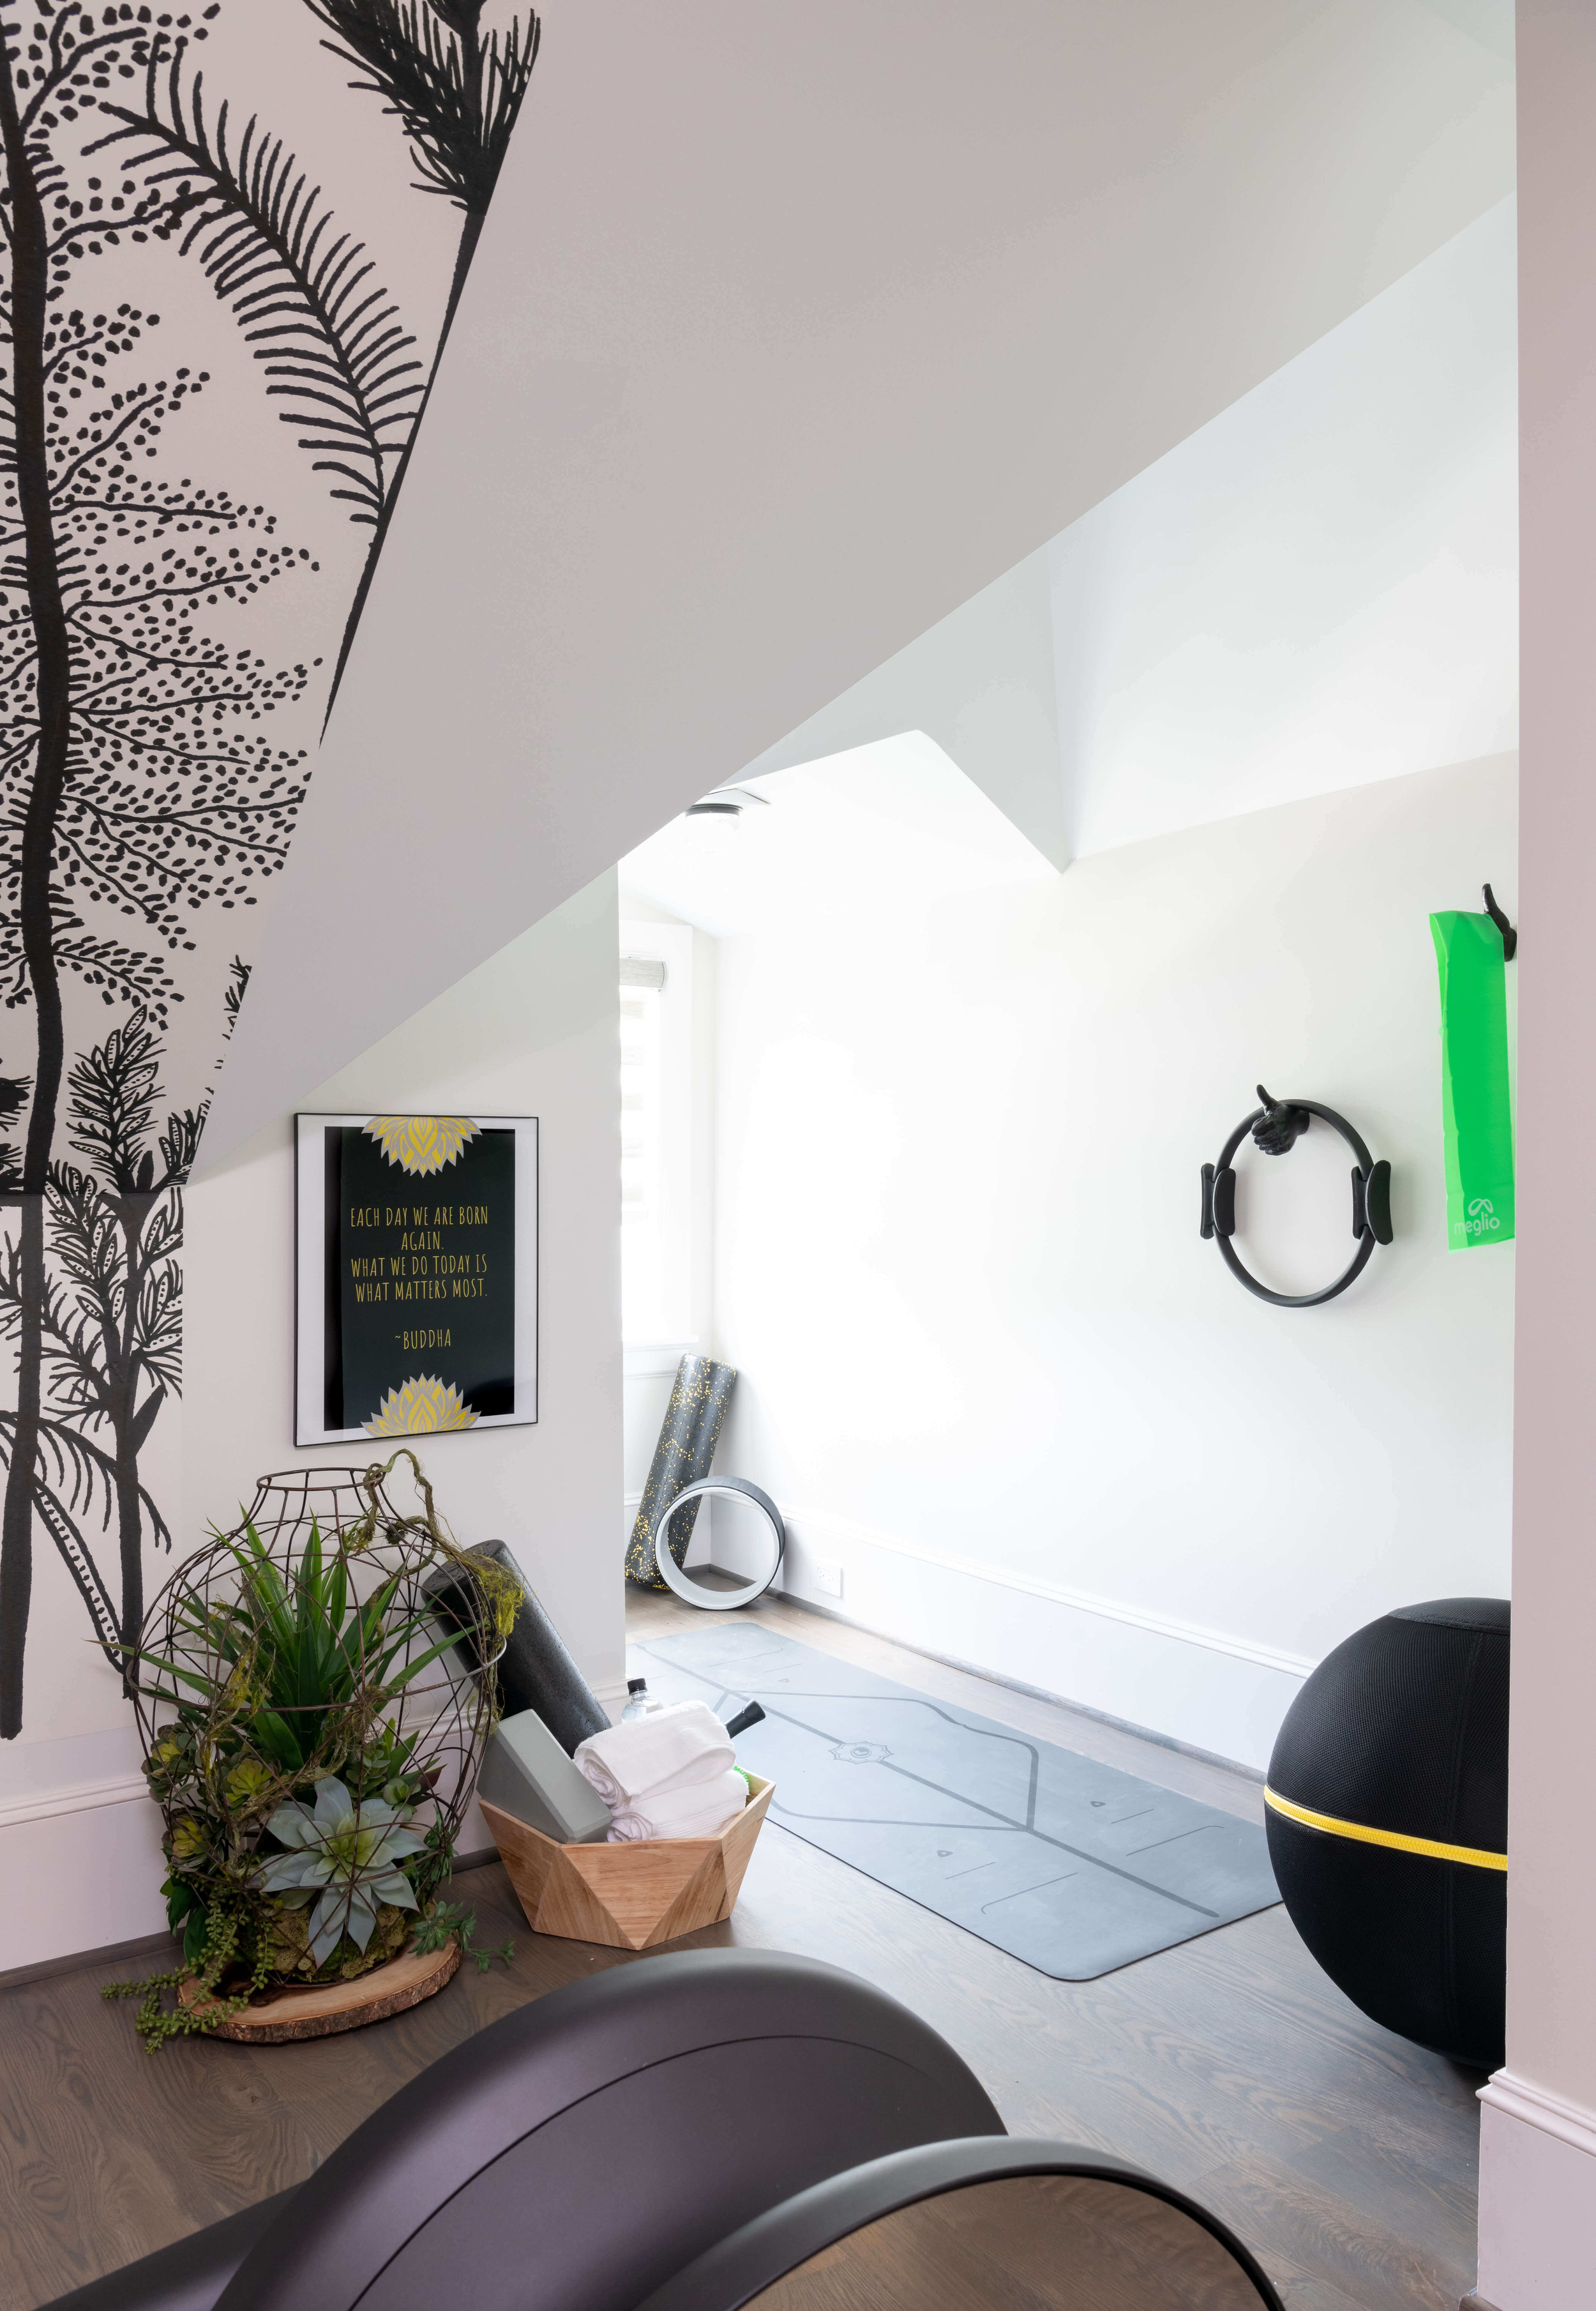 The exercise room on the 3rd floor of this home takes advantage of the open space with an energizing mural and exercise equipment. Designed by Saima Seyar, Elima Designs | ASID River Oaks Showhouse, Photographer - Michael Hunter #exerciseroom #workoutroom